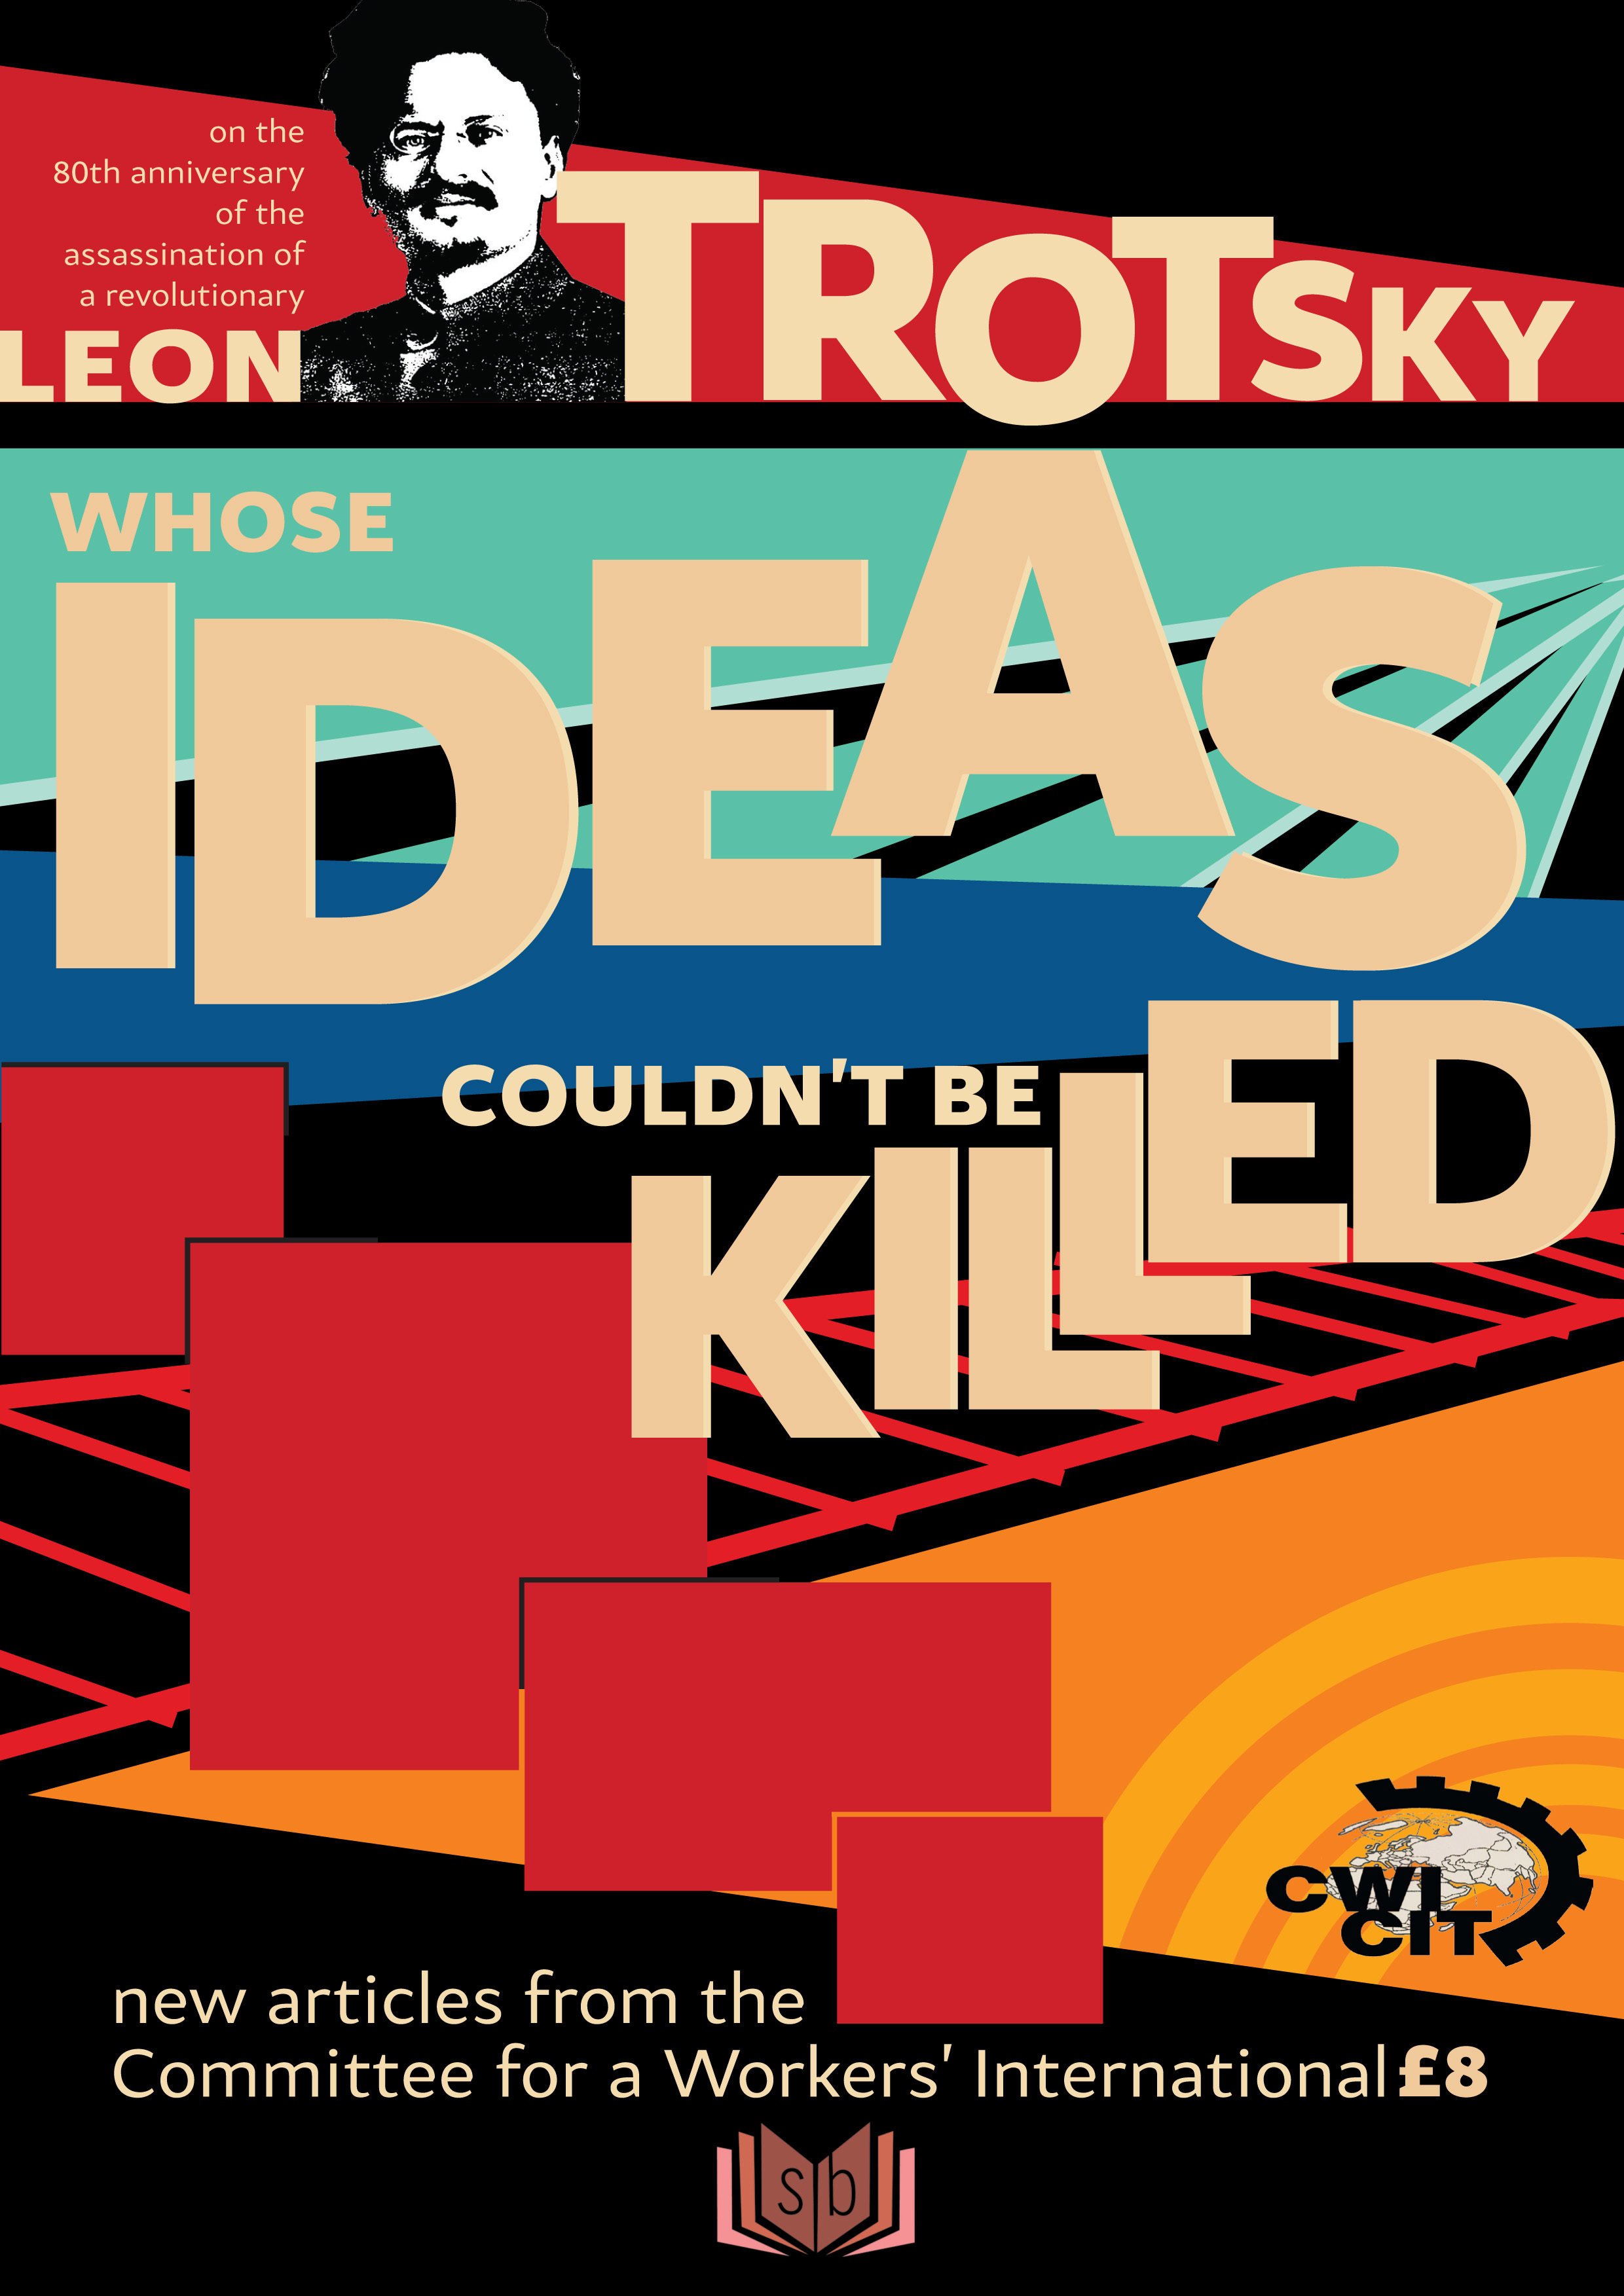 CWI_trotsky_book